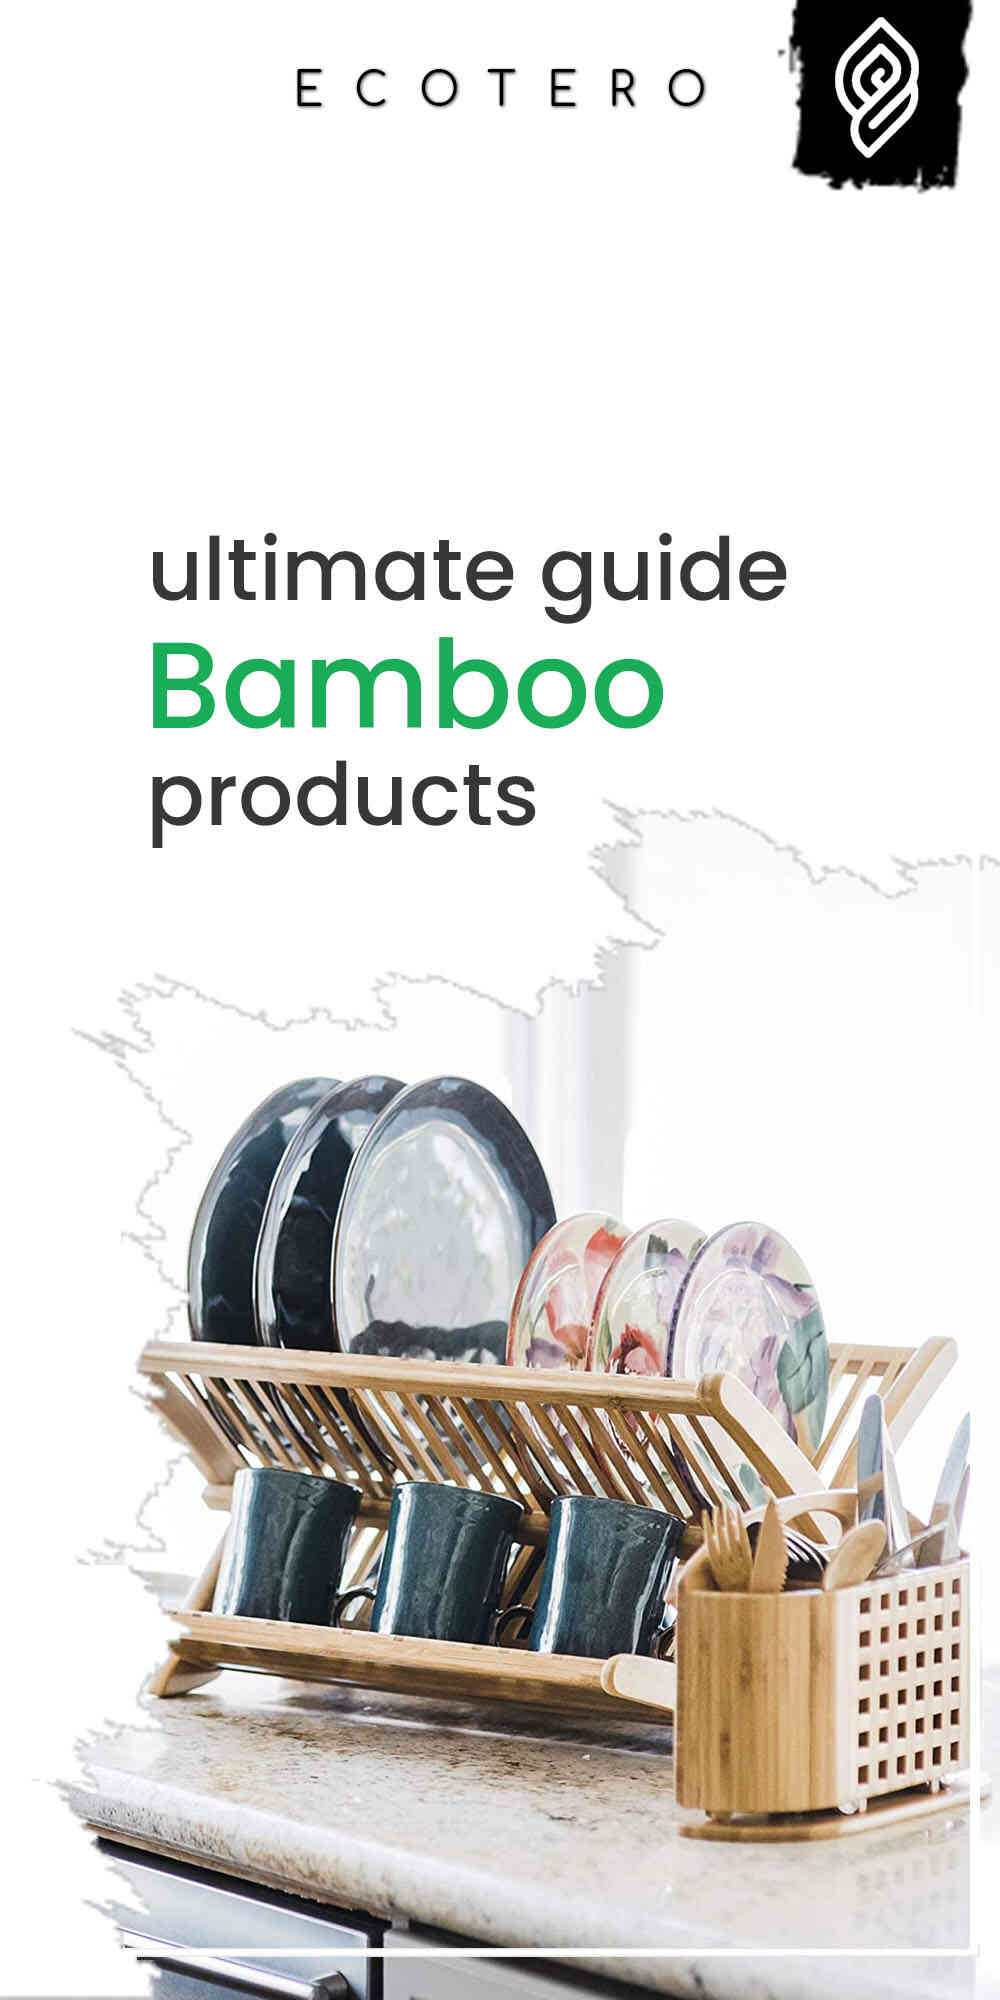 Best-Eco-Friendly-Bamboo-Products